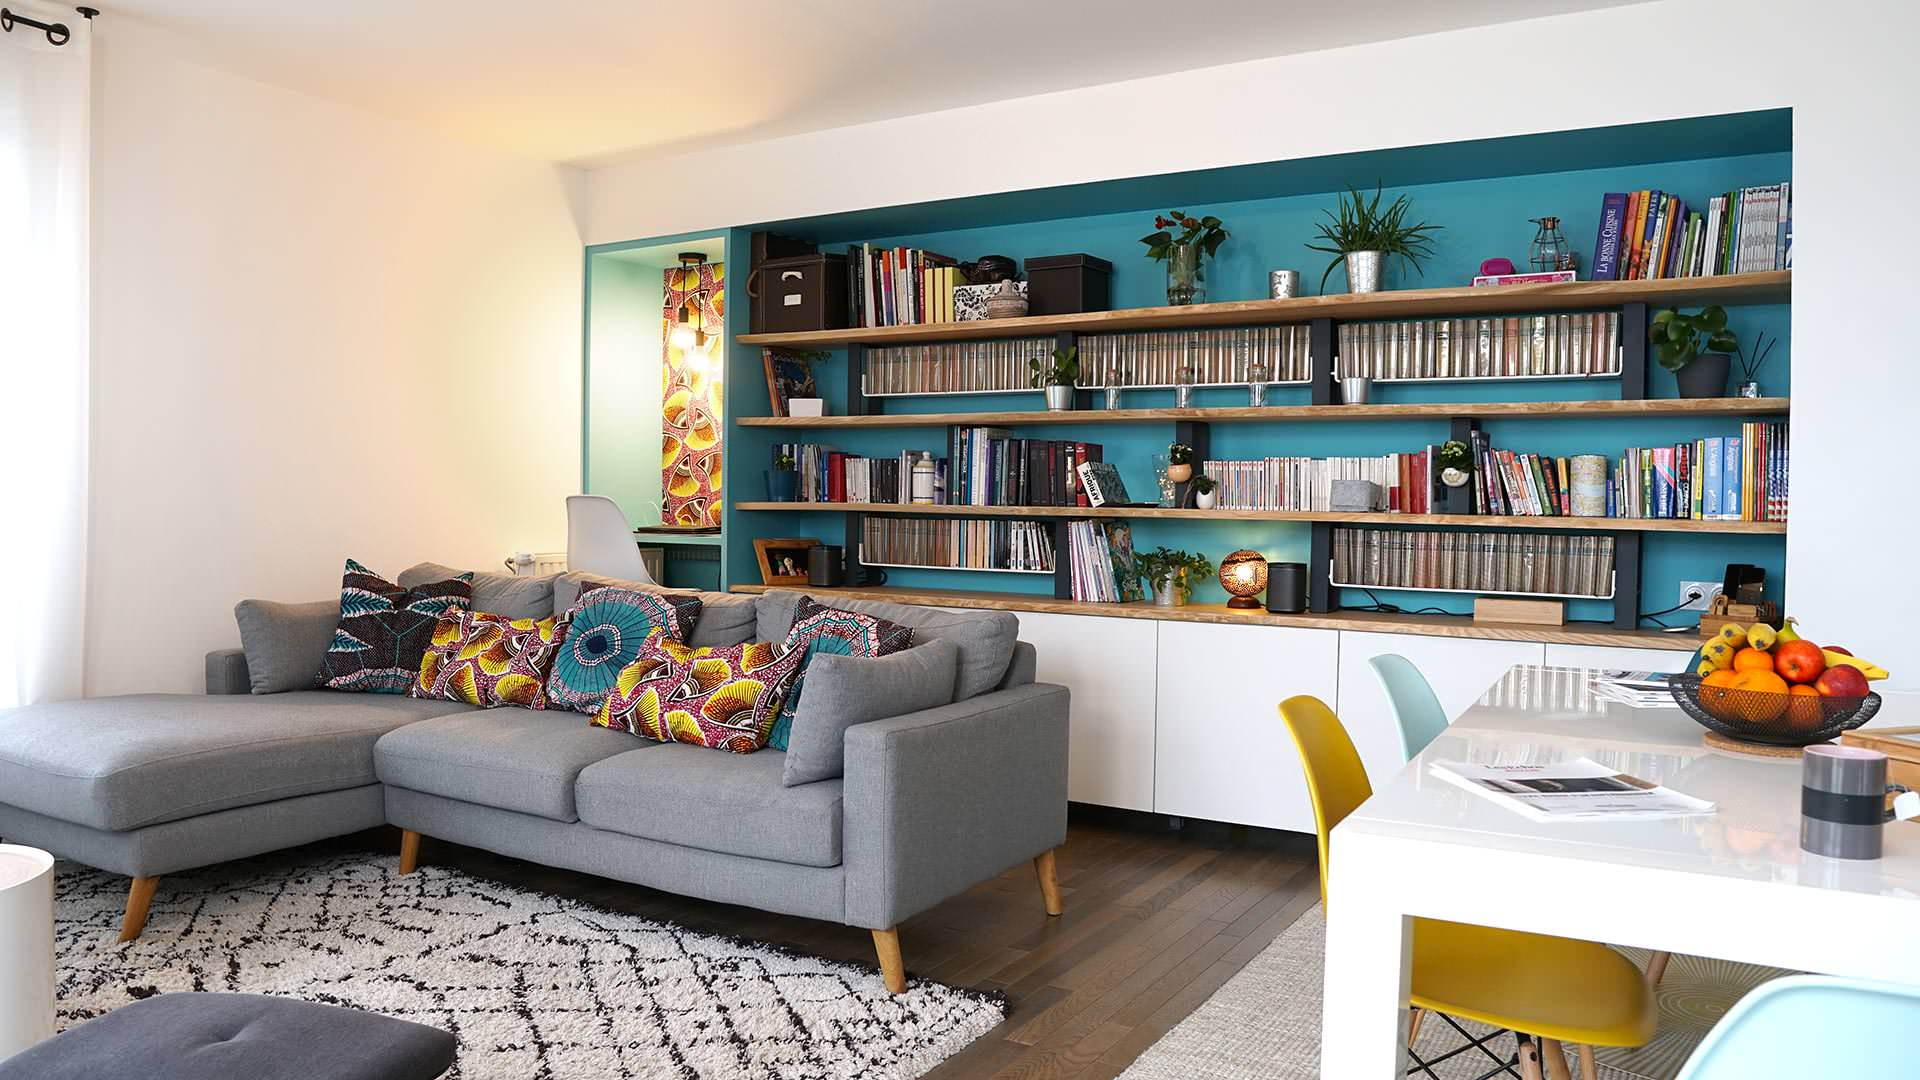 75 Beautiful Living Room With Blue Walls And A Tv Stand Pictures Ideas April 2021 Houzz